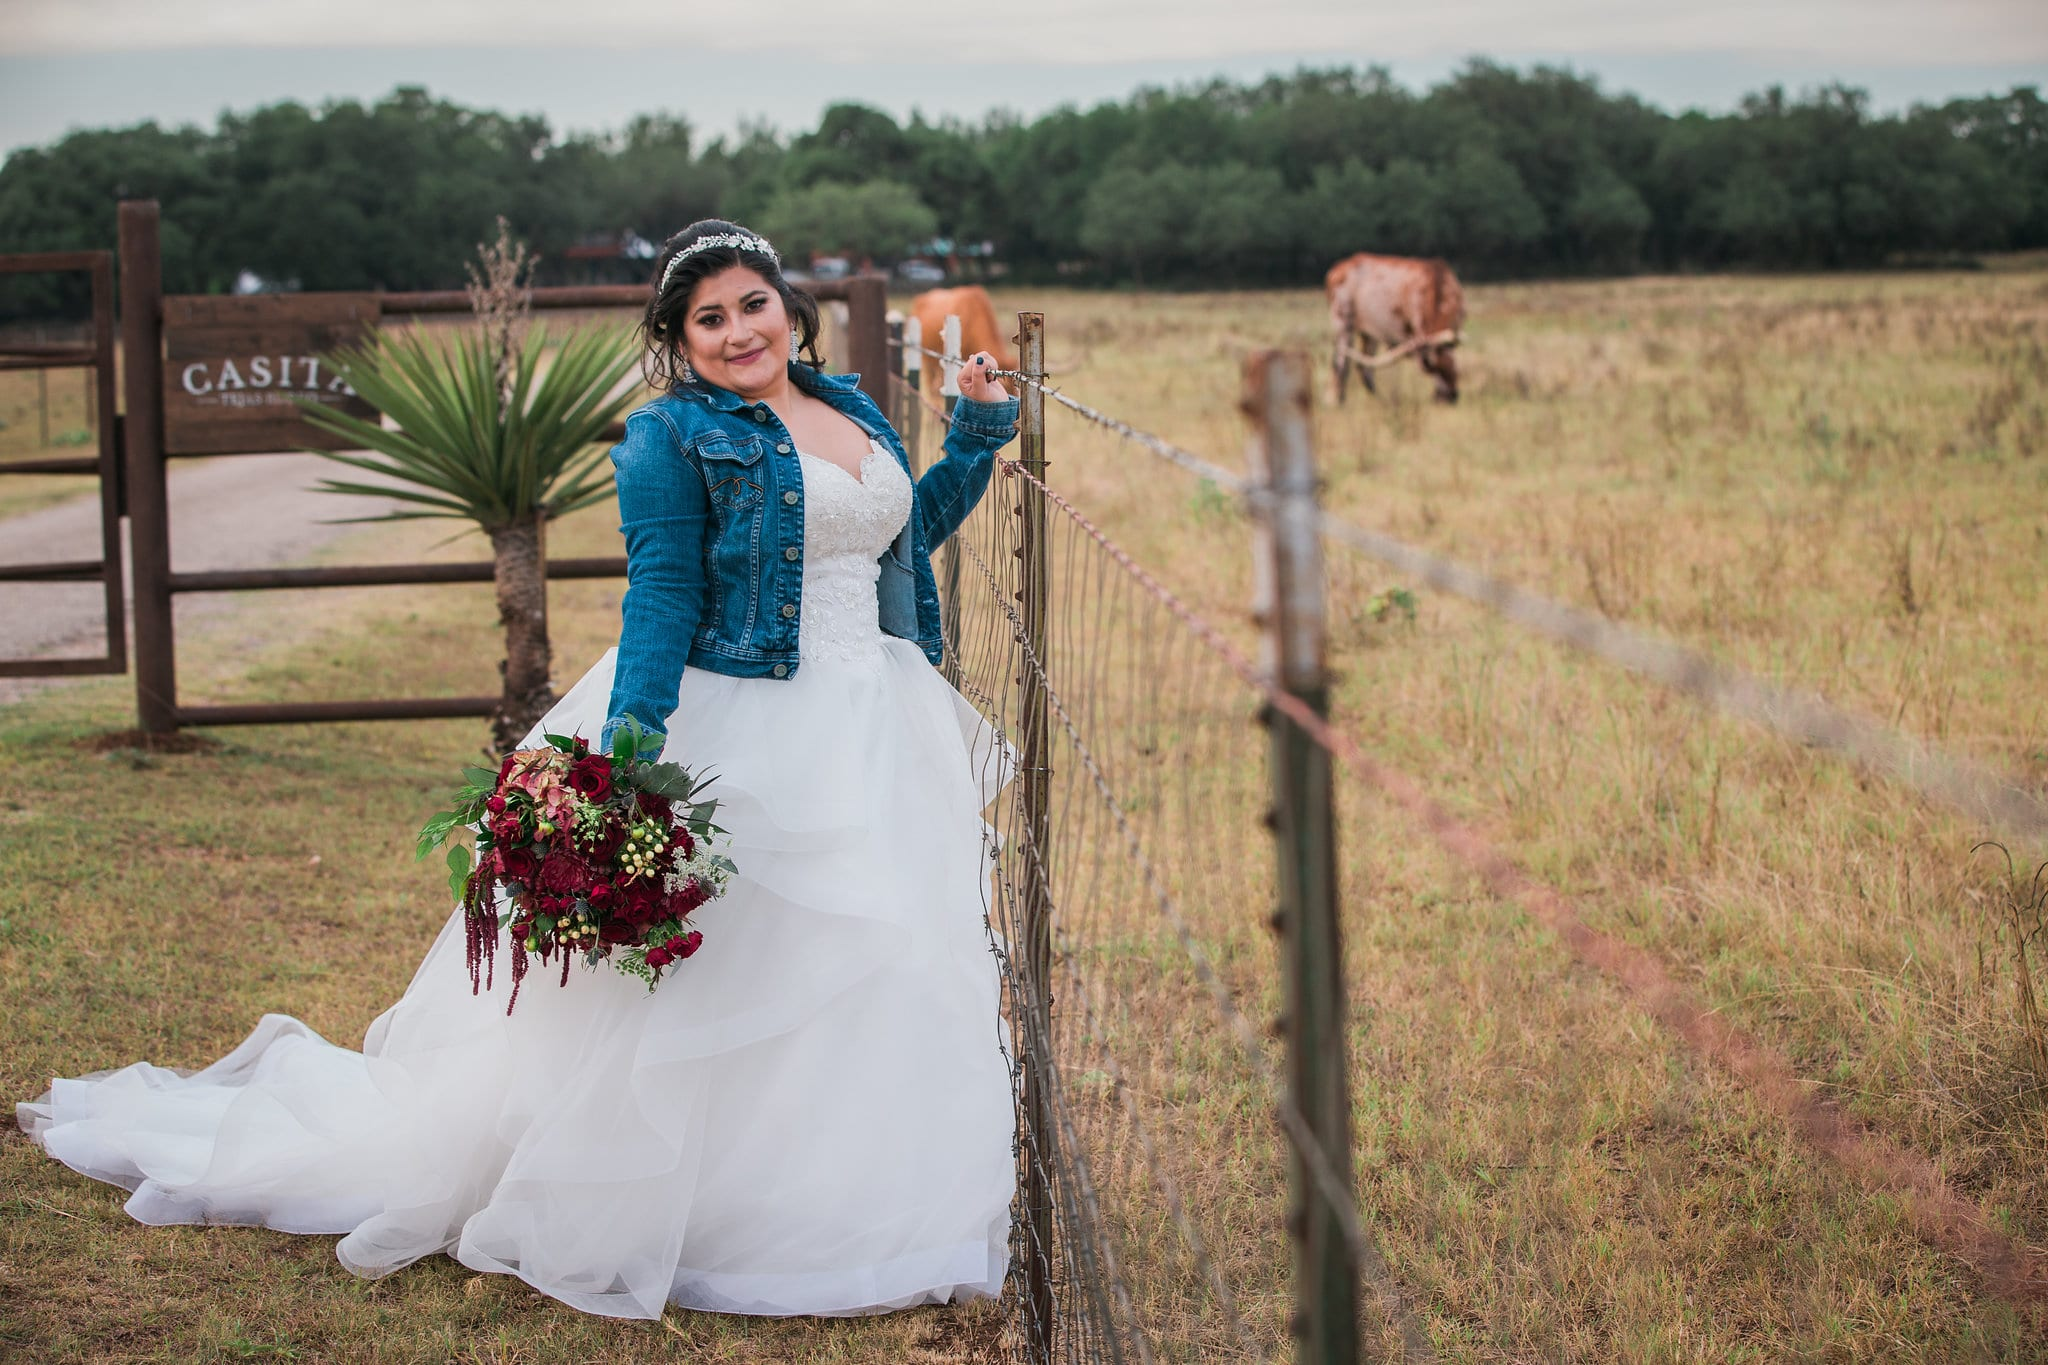 Laura's Bridals at Western Sky in the field at the gate with cow